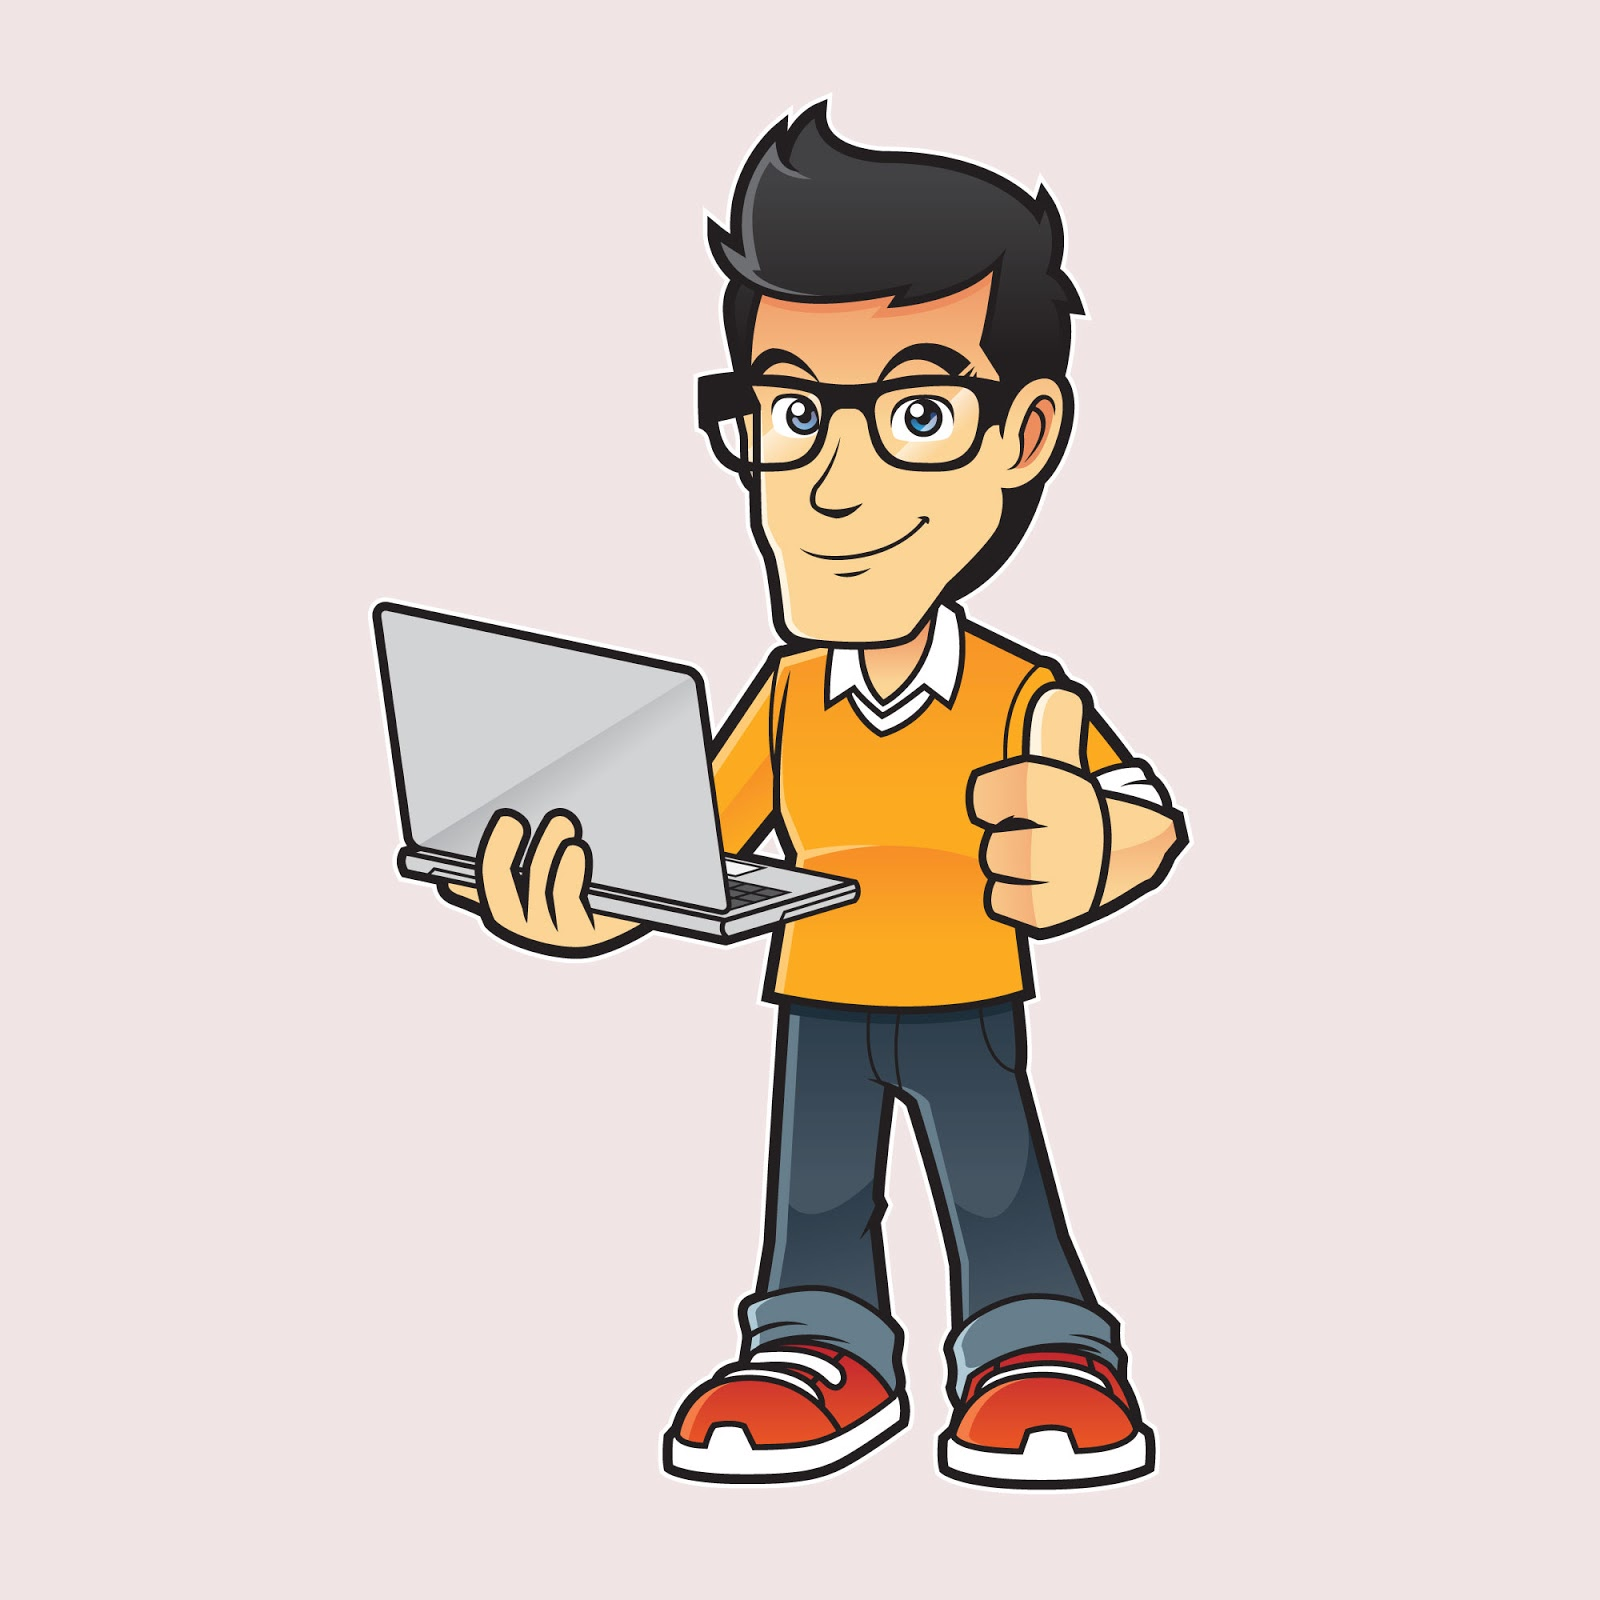 Computer Expert Mascot Illustration Free Download Vector CDR, AI, EPS and PNG Formats